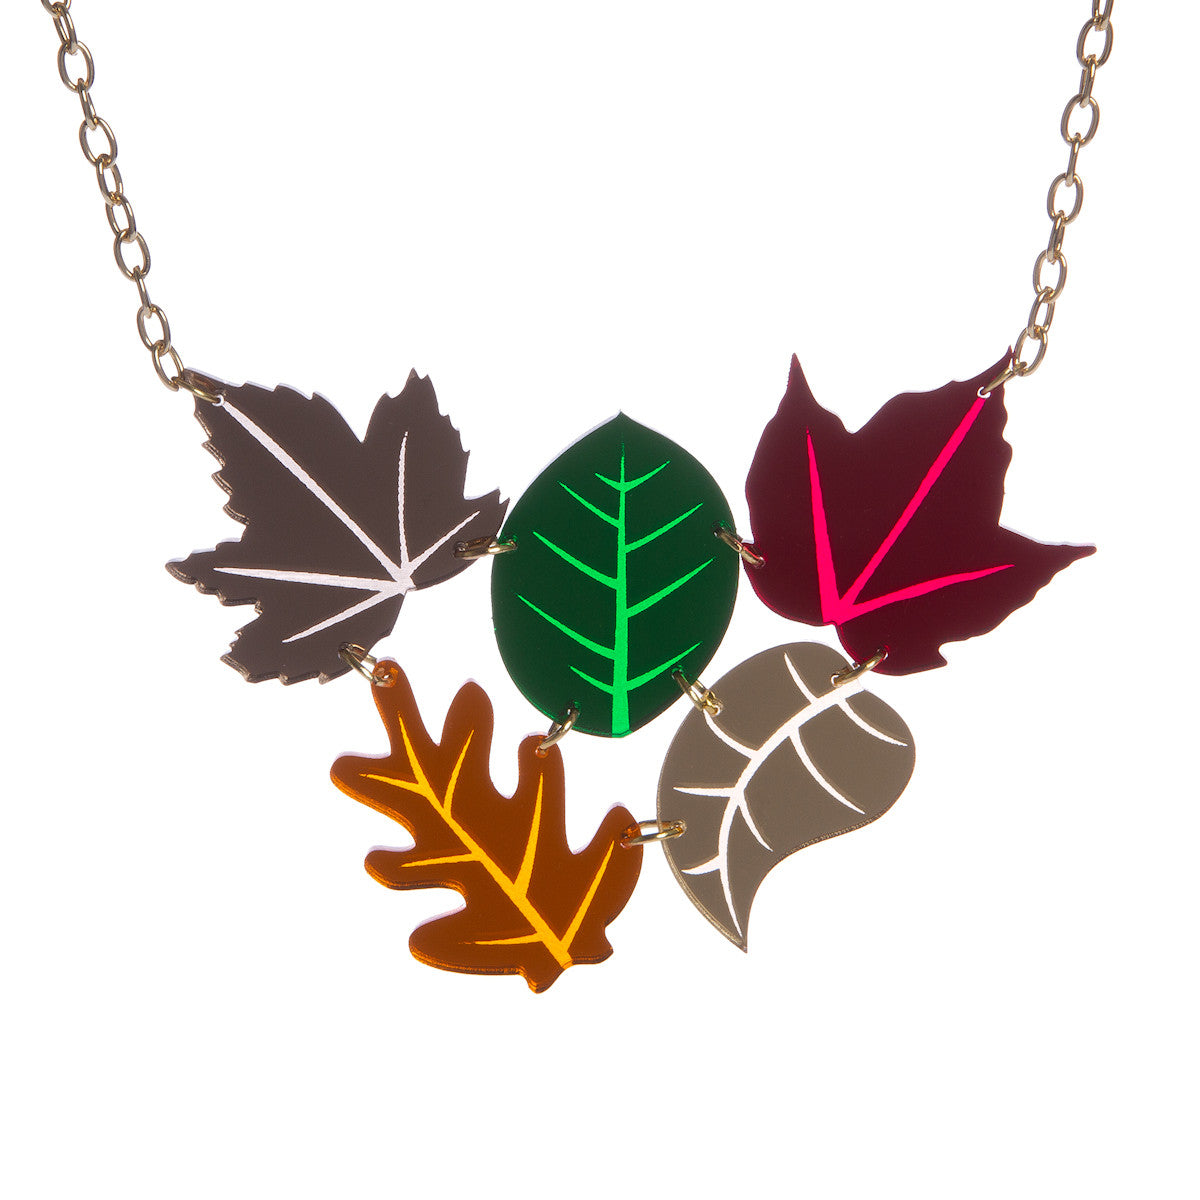 Sugar & Vice Autumn Leaves Cluster Necklace